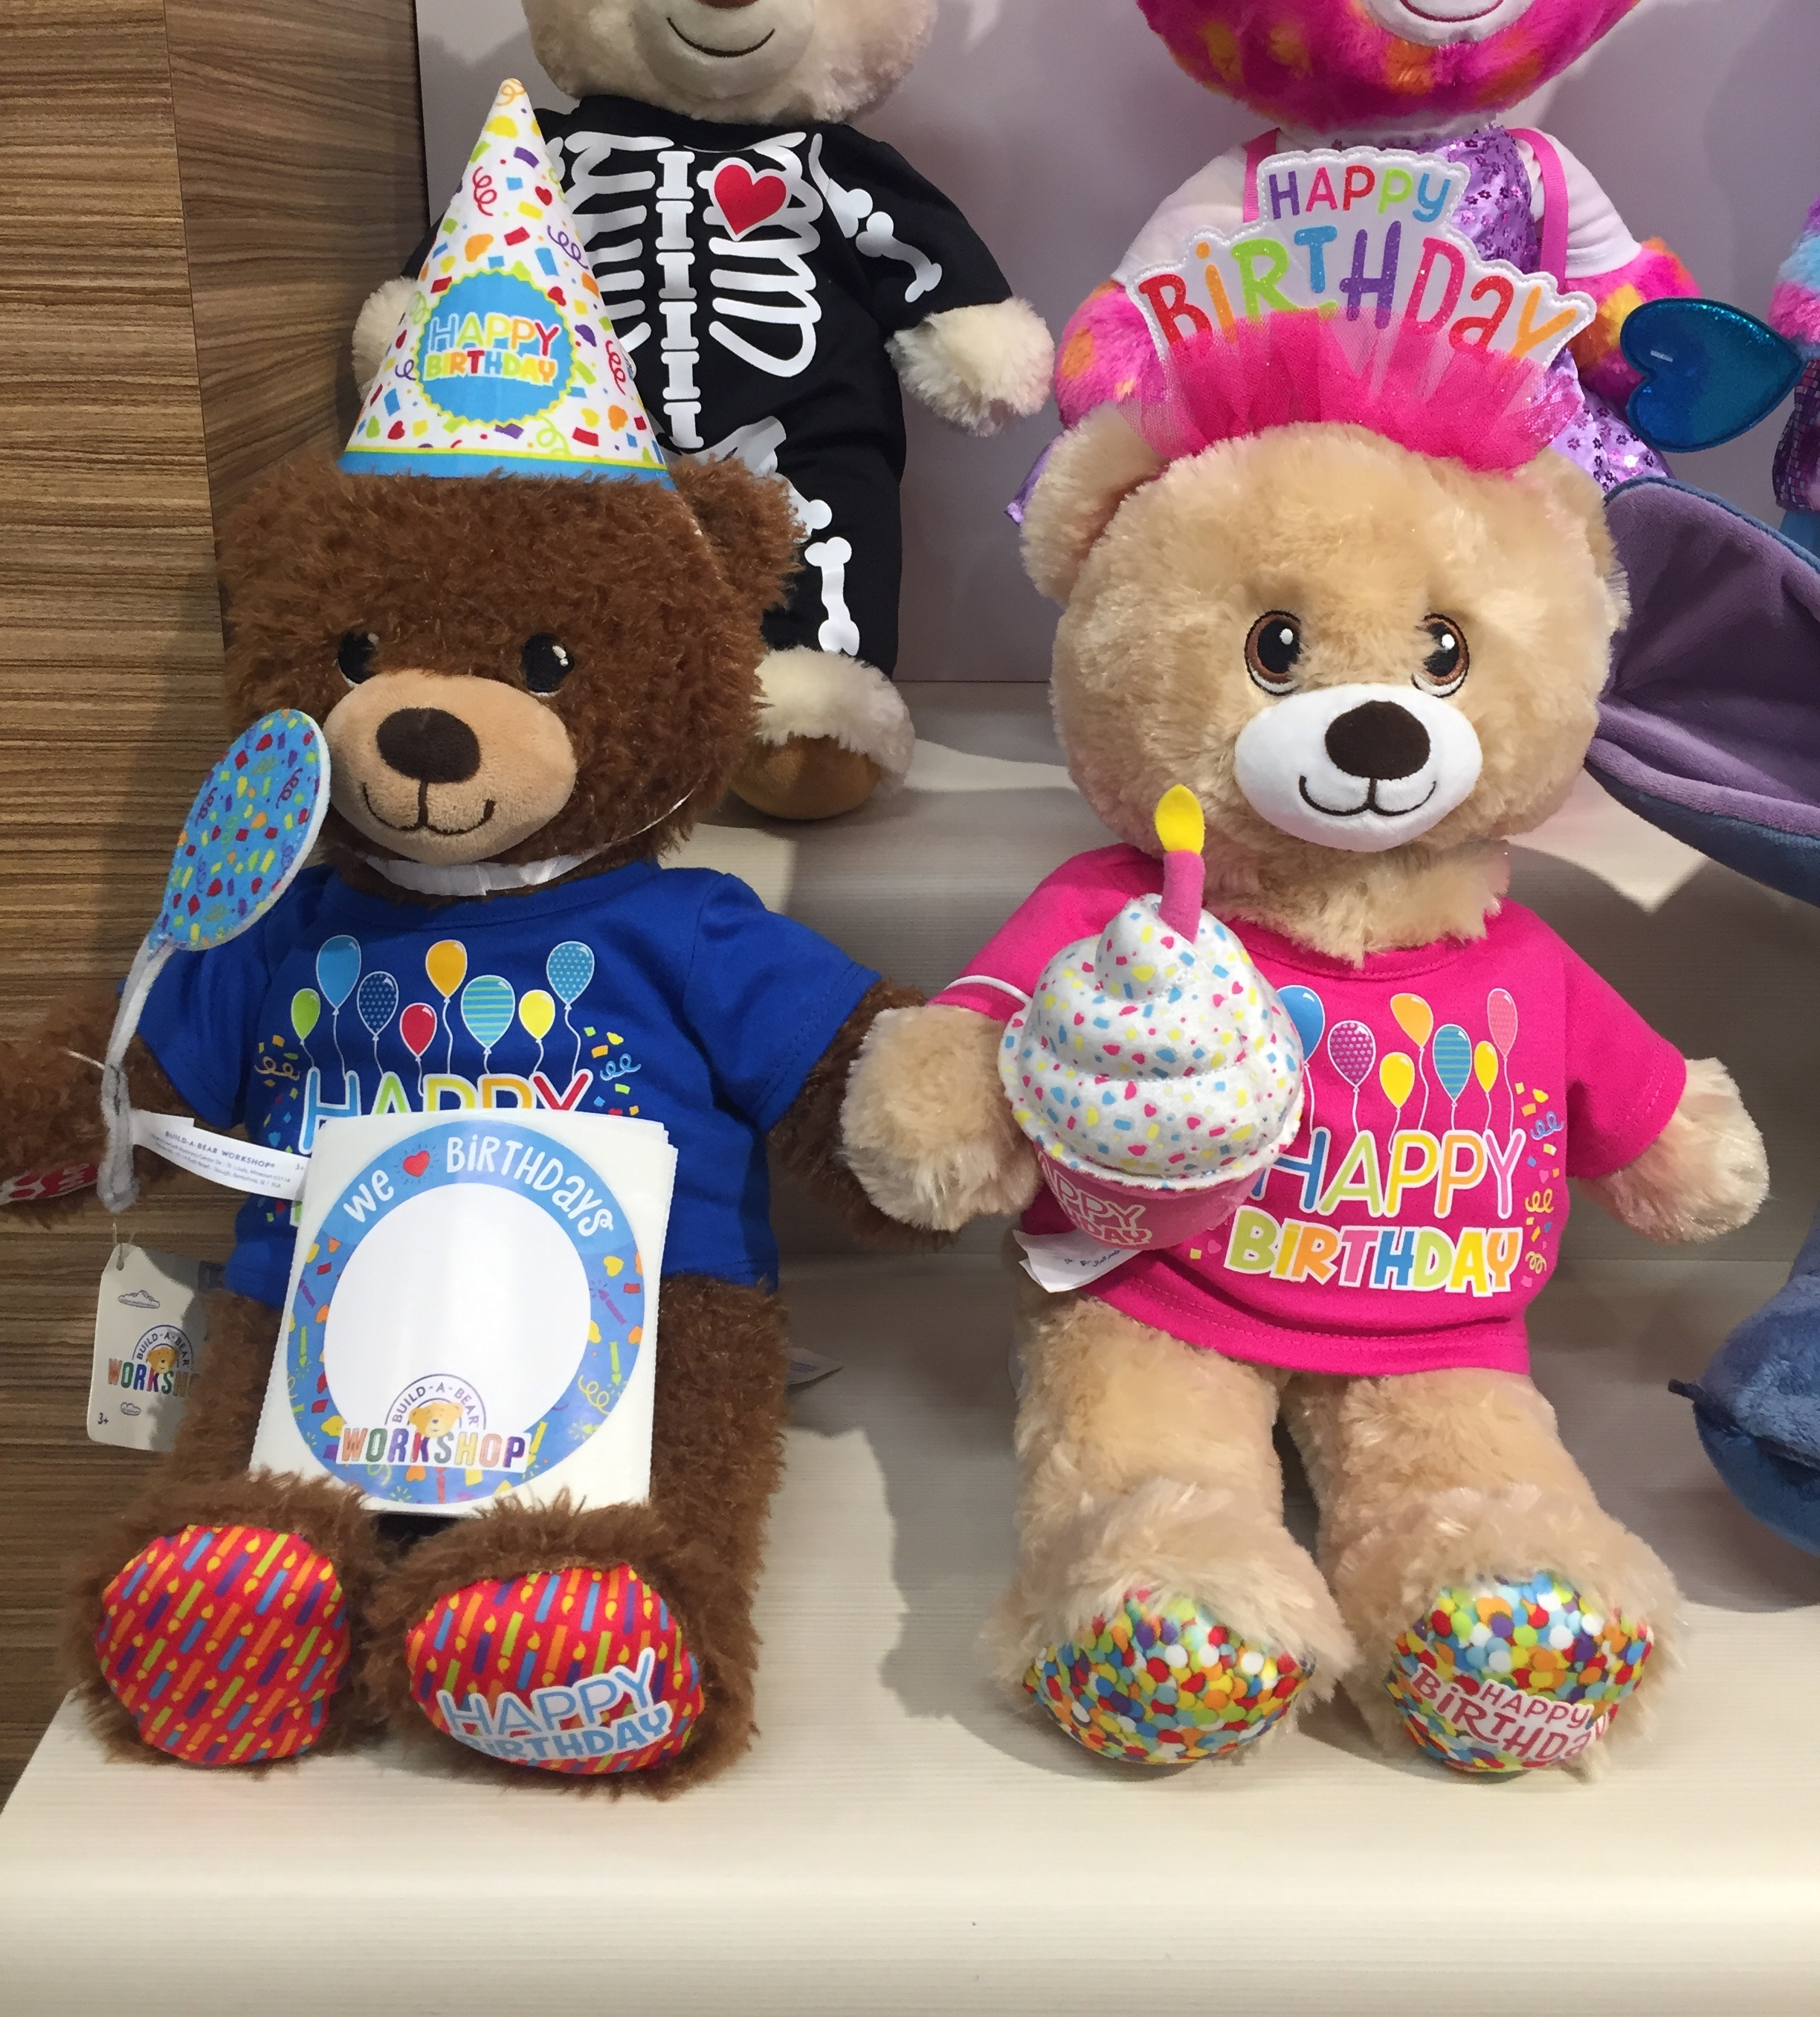 Build-A-Bear Birthday bears dressed in t-shirts and hats at store